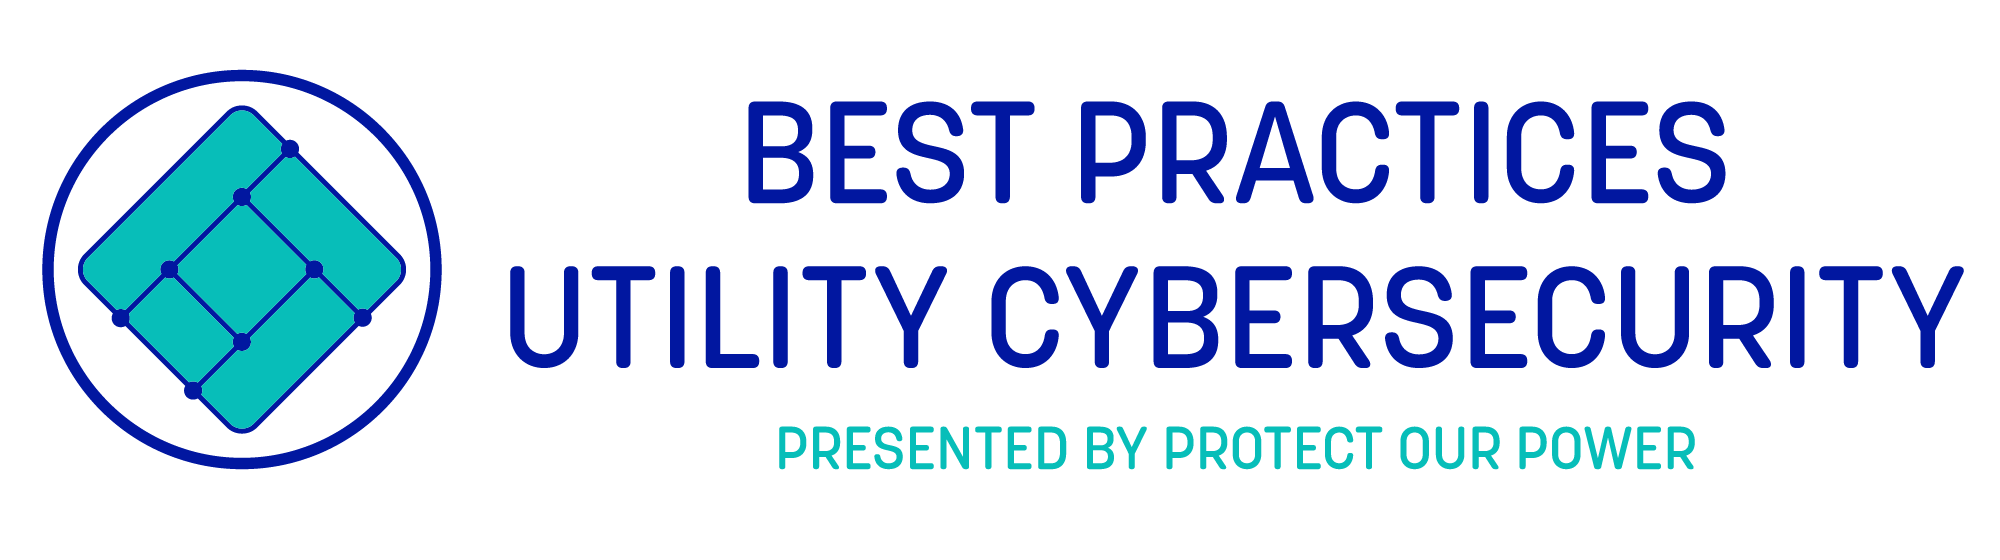 Best Practices in Utility Cybersecurity Conference